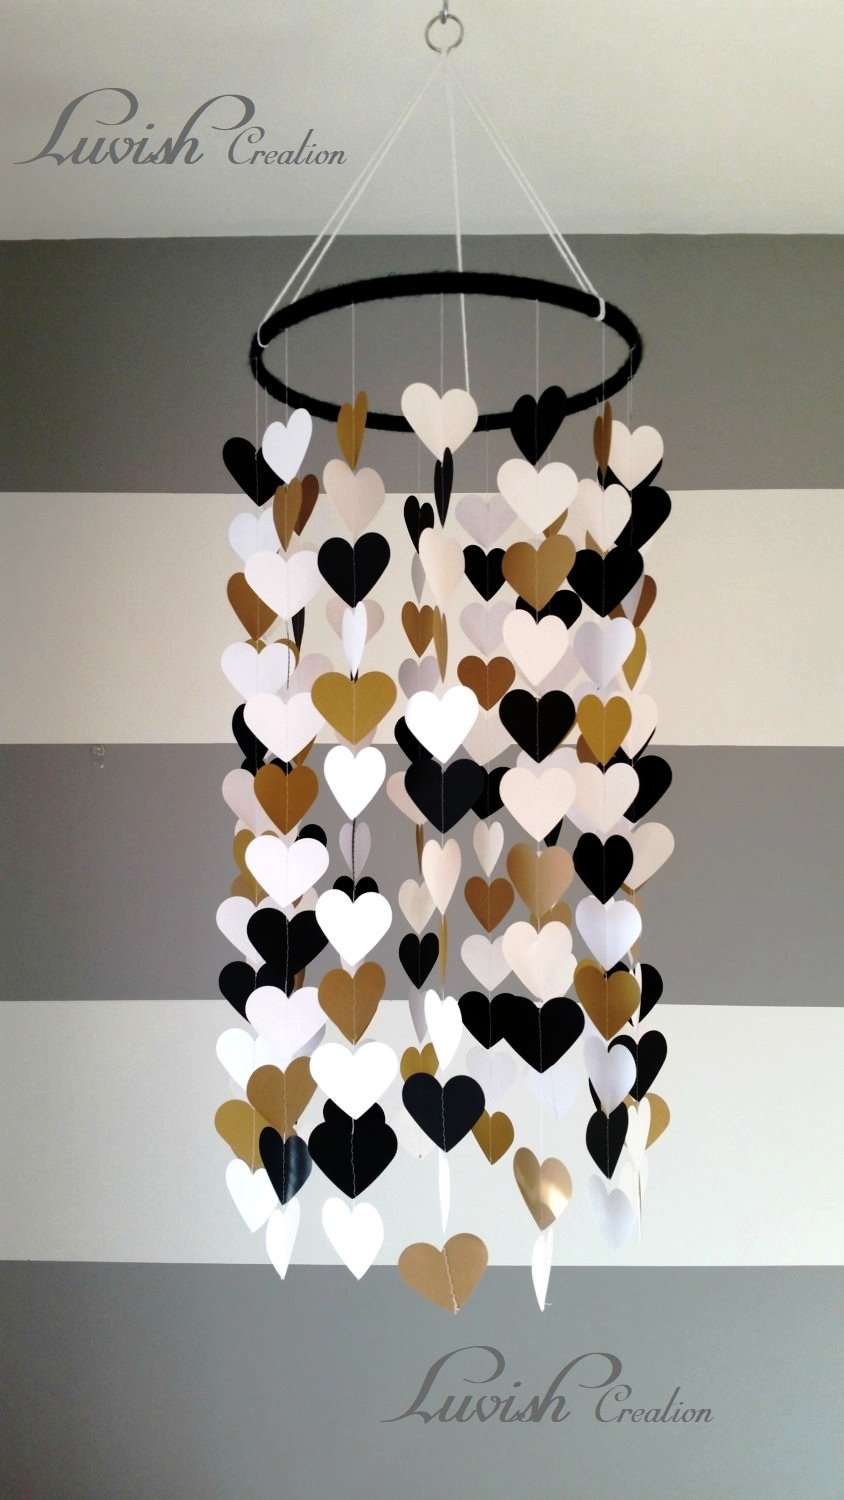 Luvish Creation Heart Shape Paper Mobile Black White Gold Baby Room Decoration Room Decor Wedding Decor Amazon In Toys Games